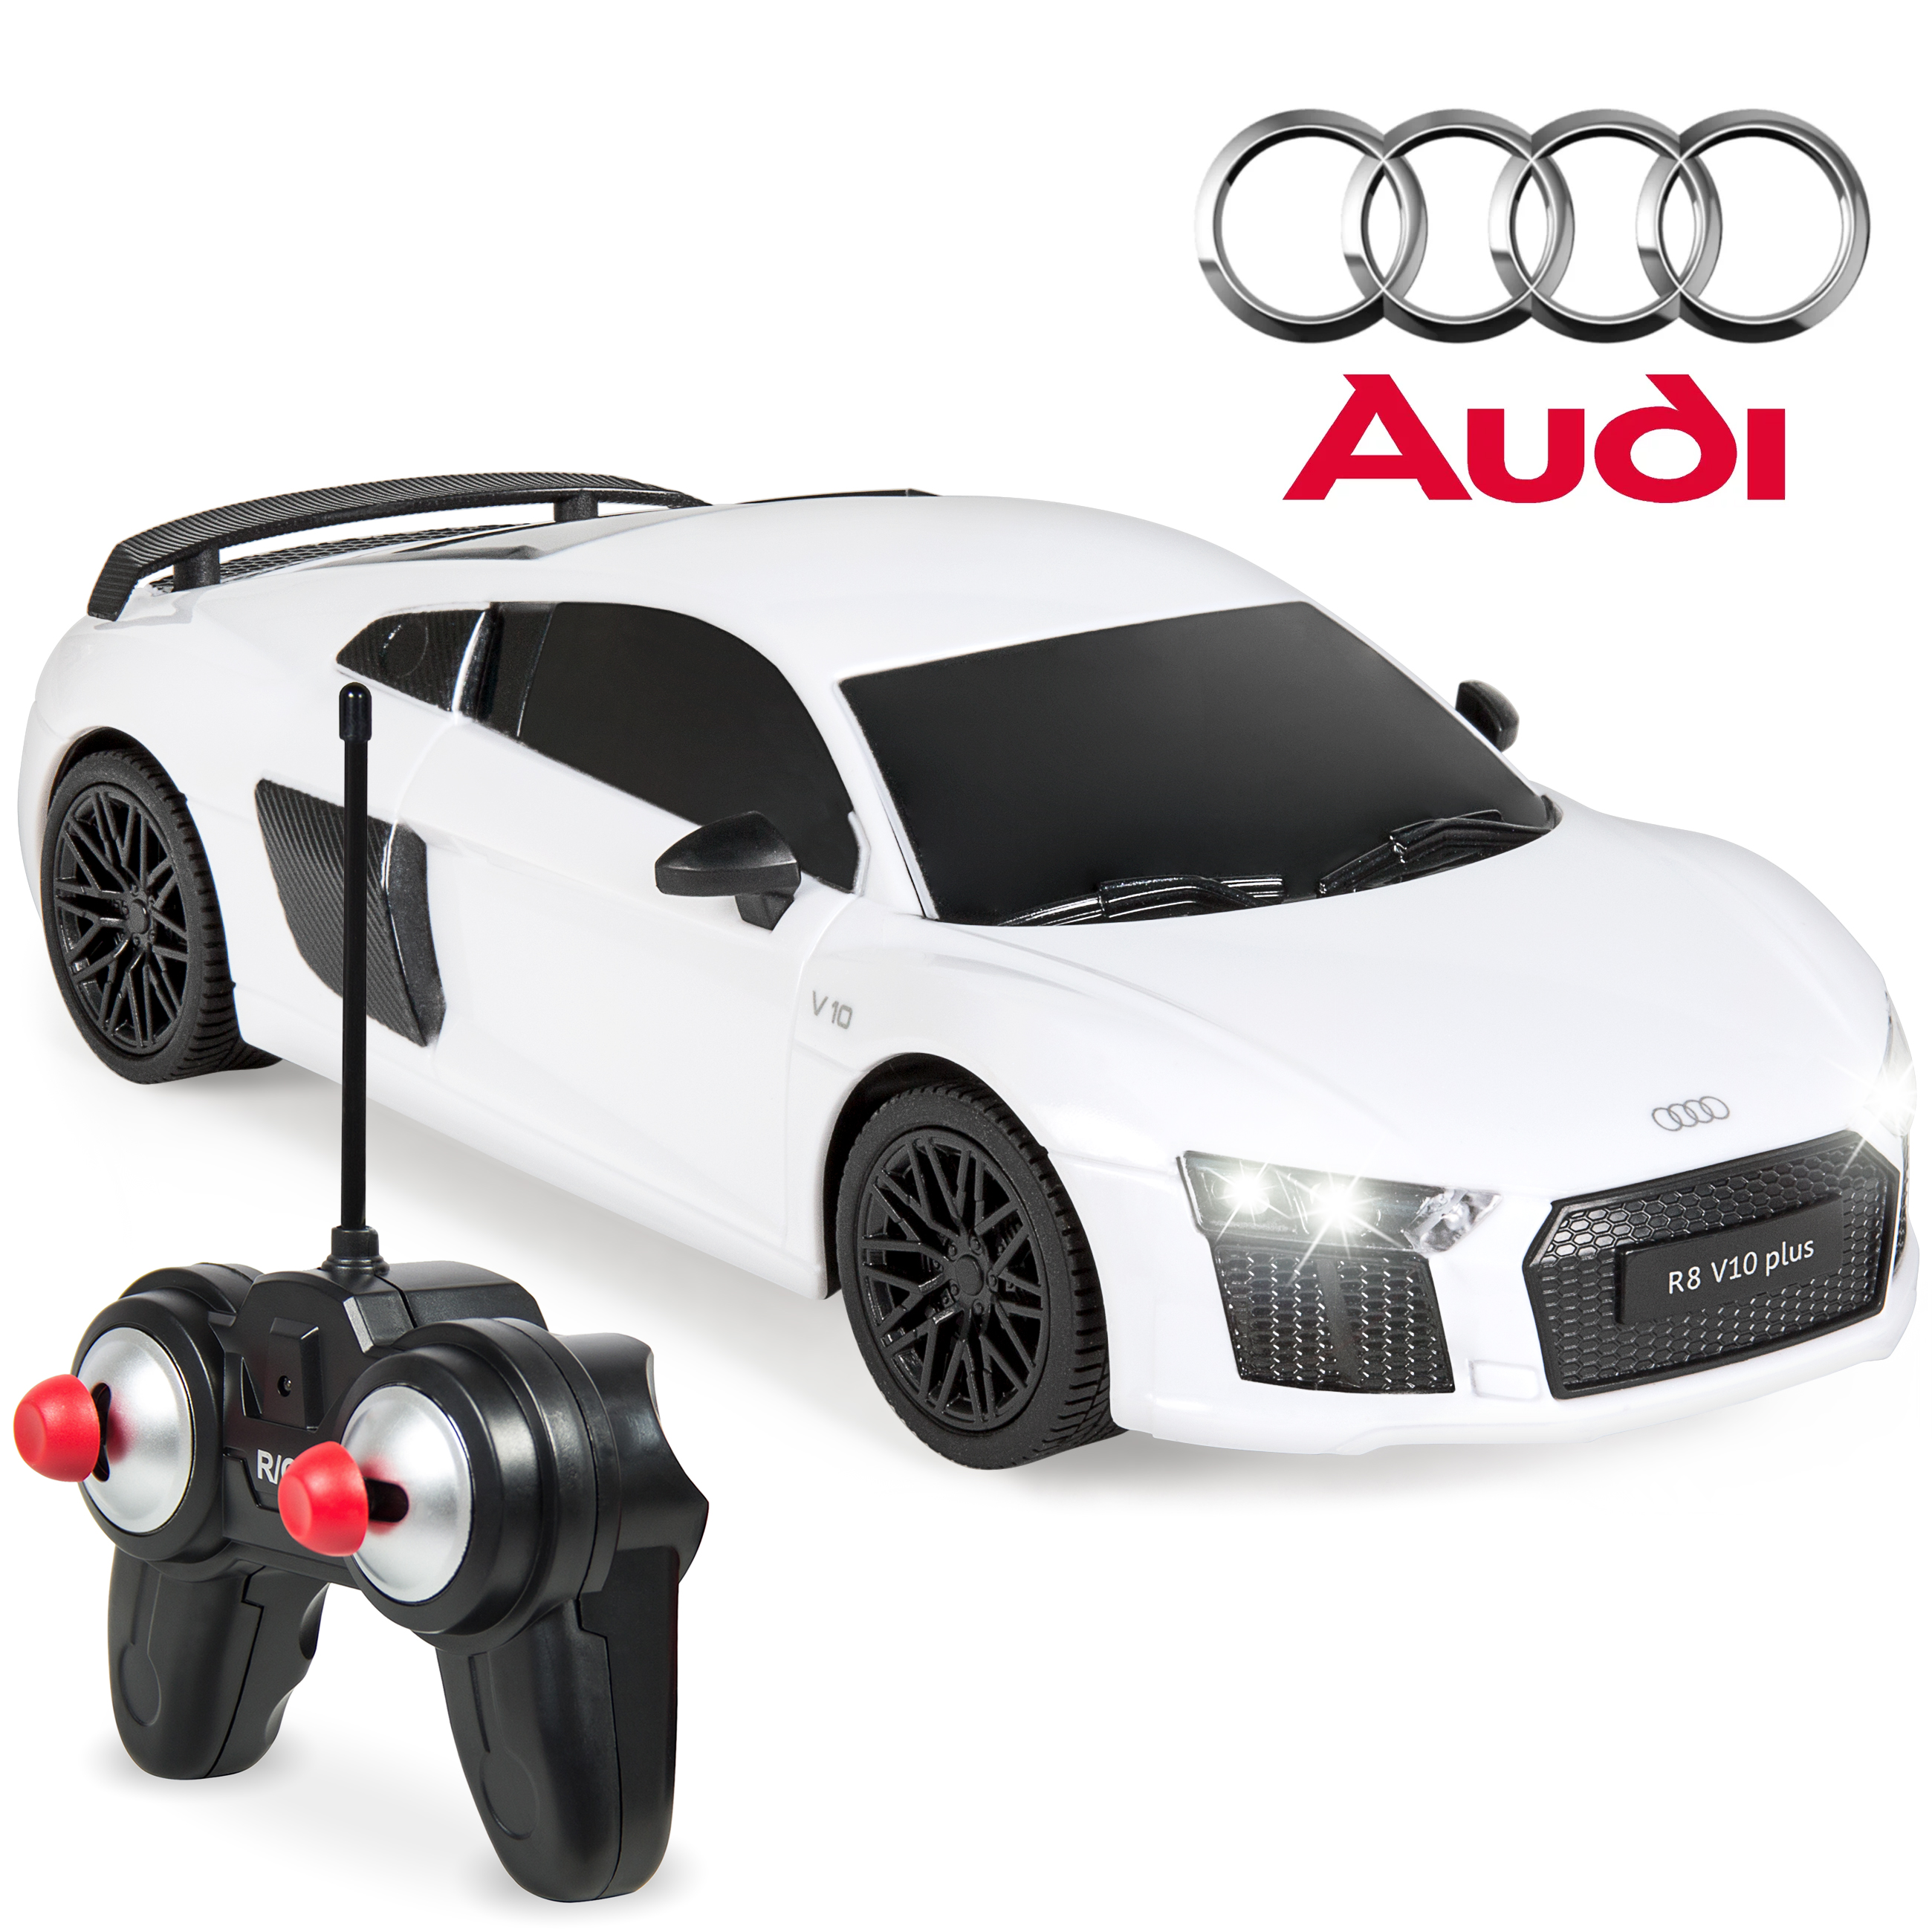 Best Choice Products 1/24 Scale 27MHz Officially Licensed Remote Control Audi R8 Luxury RC Sport Toy Car w/ Lights, Shock Suspension System - White